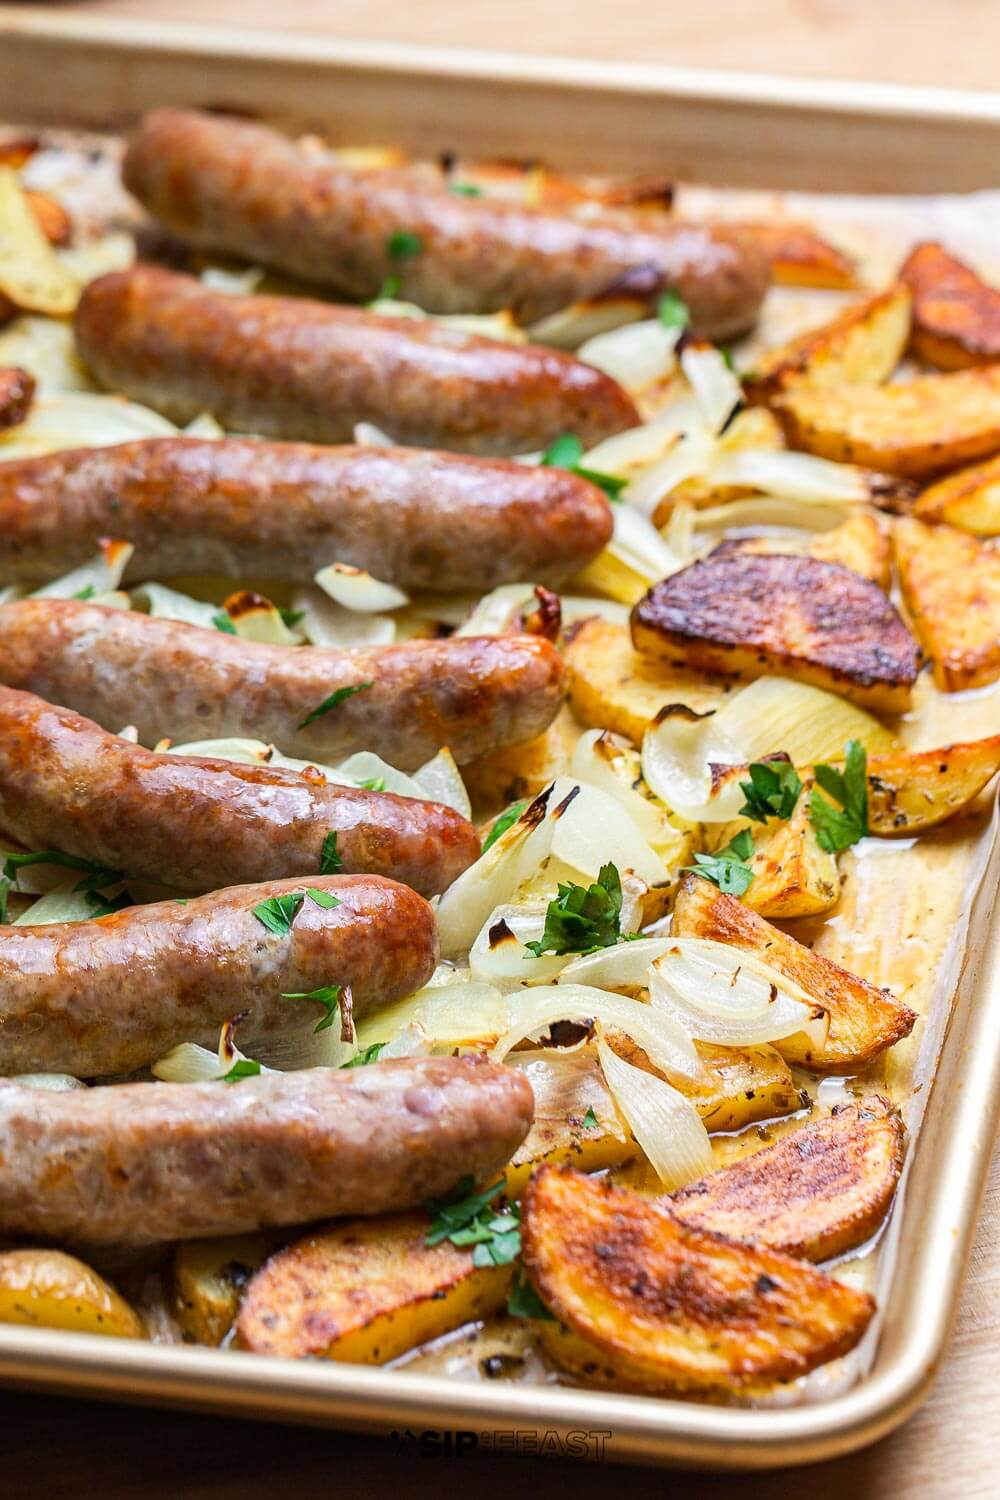 Easy Italian sheet pan dinner recipe.  Italian pinwheel sausage is layered on top of thin sliced potatoes with cherry peppers, vinegar, and extra virgin olive oil.  Super simple weeknight dinner idea. #Italianrecipe #sheetpandinner #sausagerecipe #potatorecipe #easyrecipe #onepanrecipe